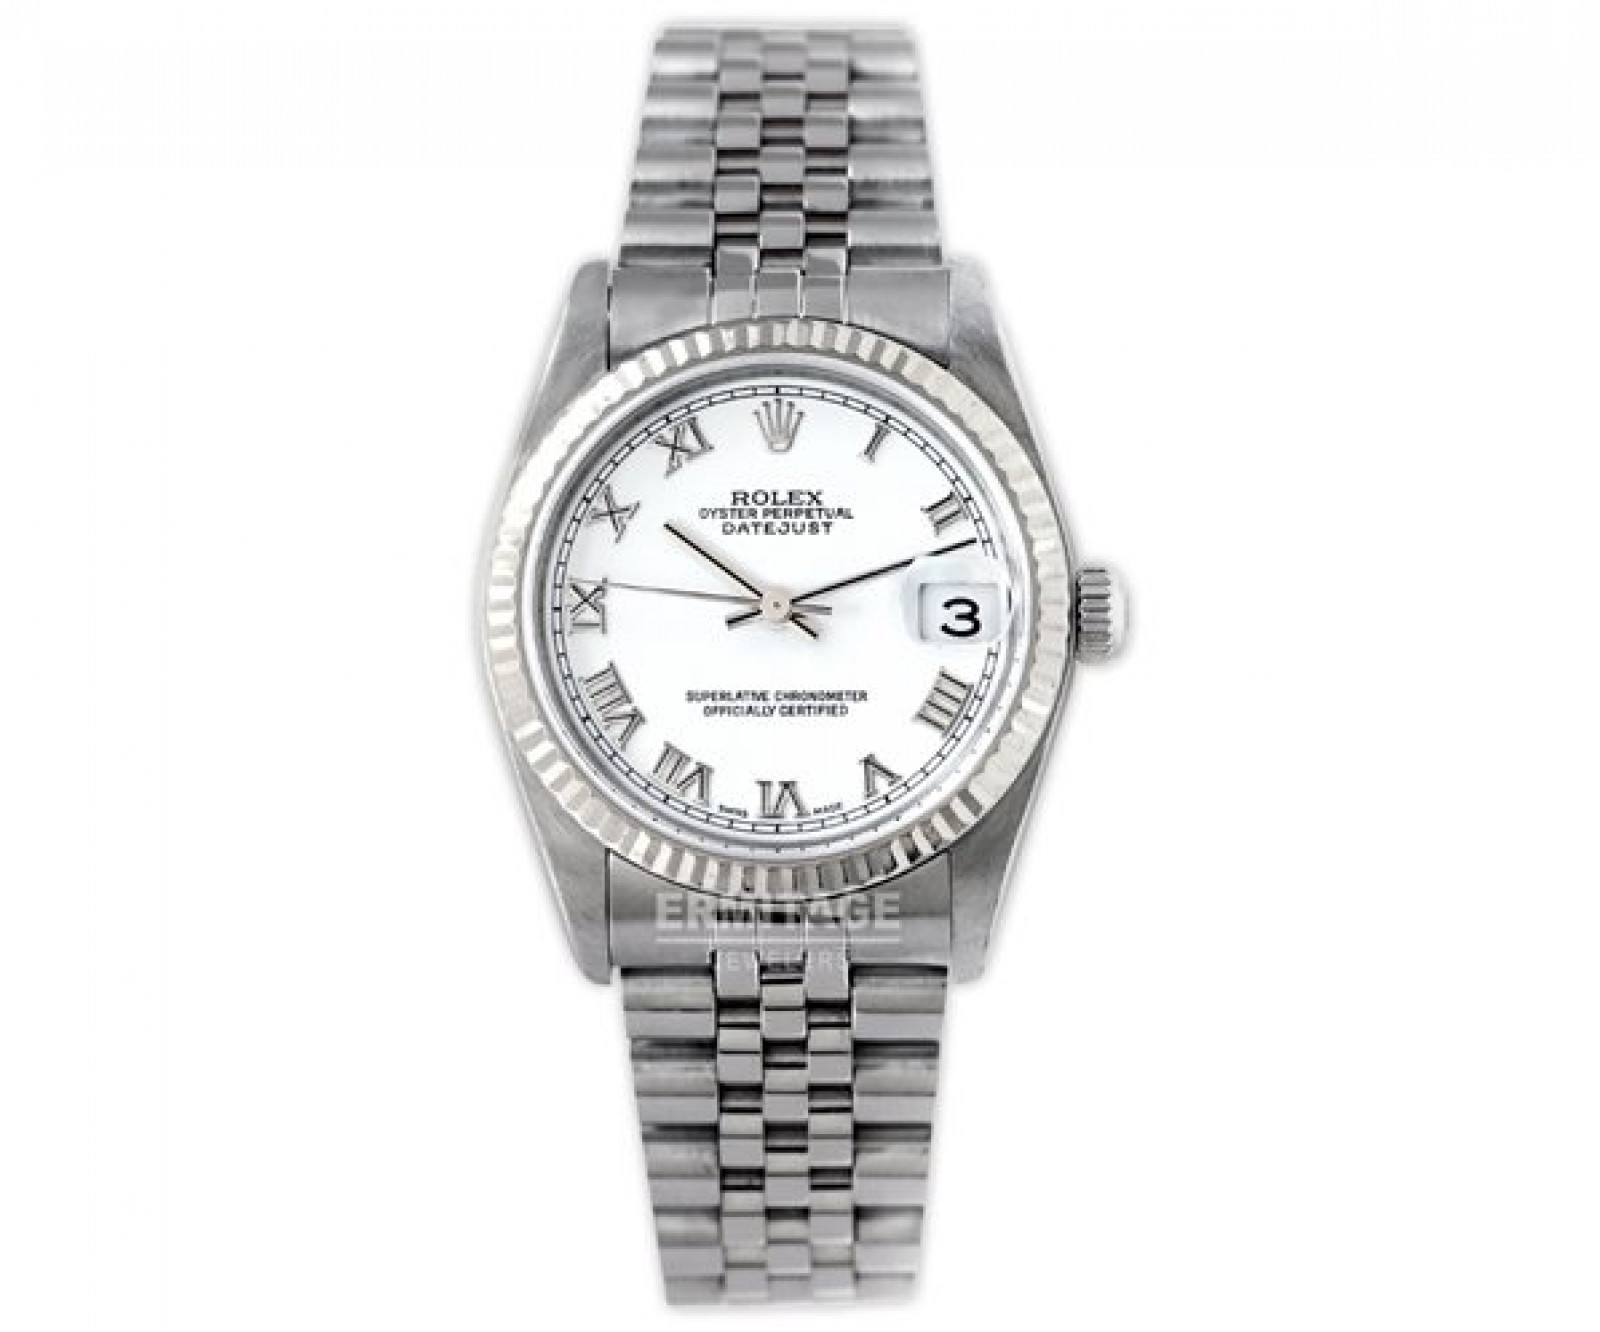 Rolex Datejust 78274 Steel with White Dial & Roman Markers